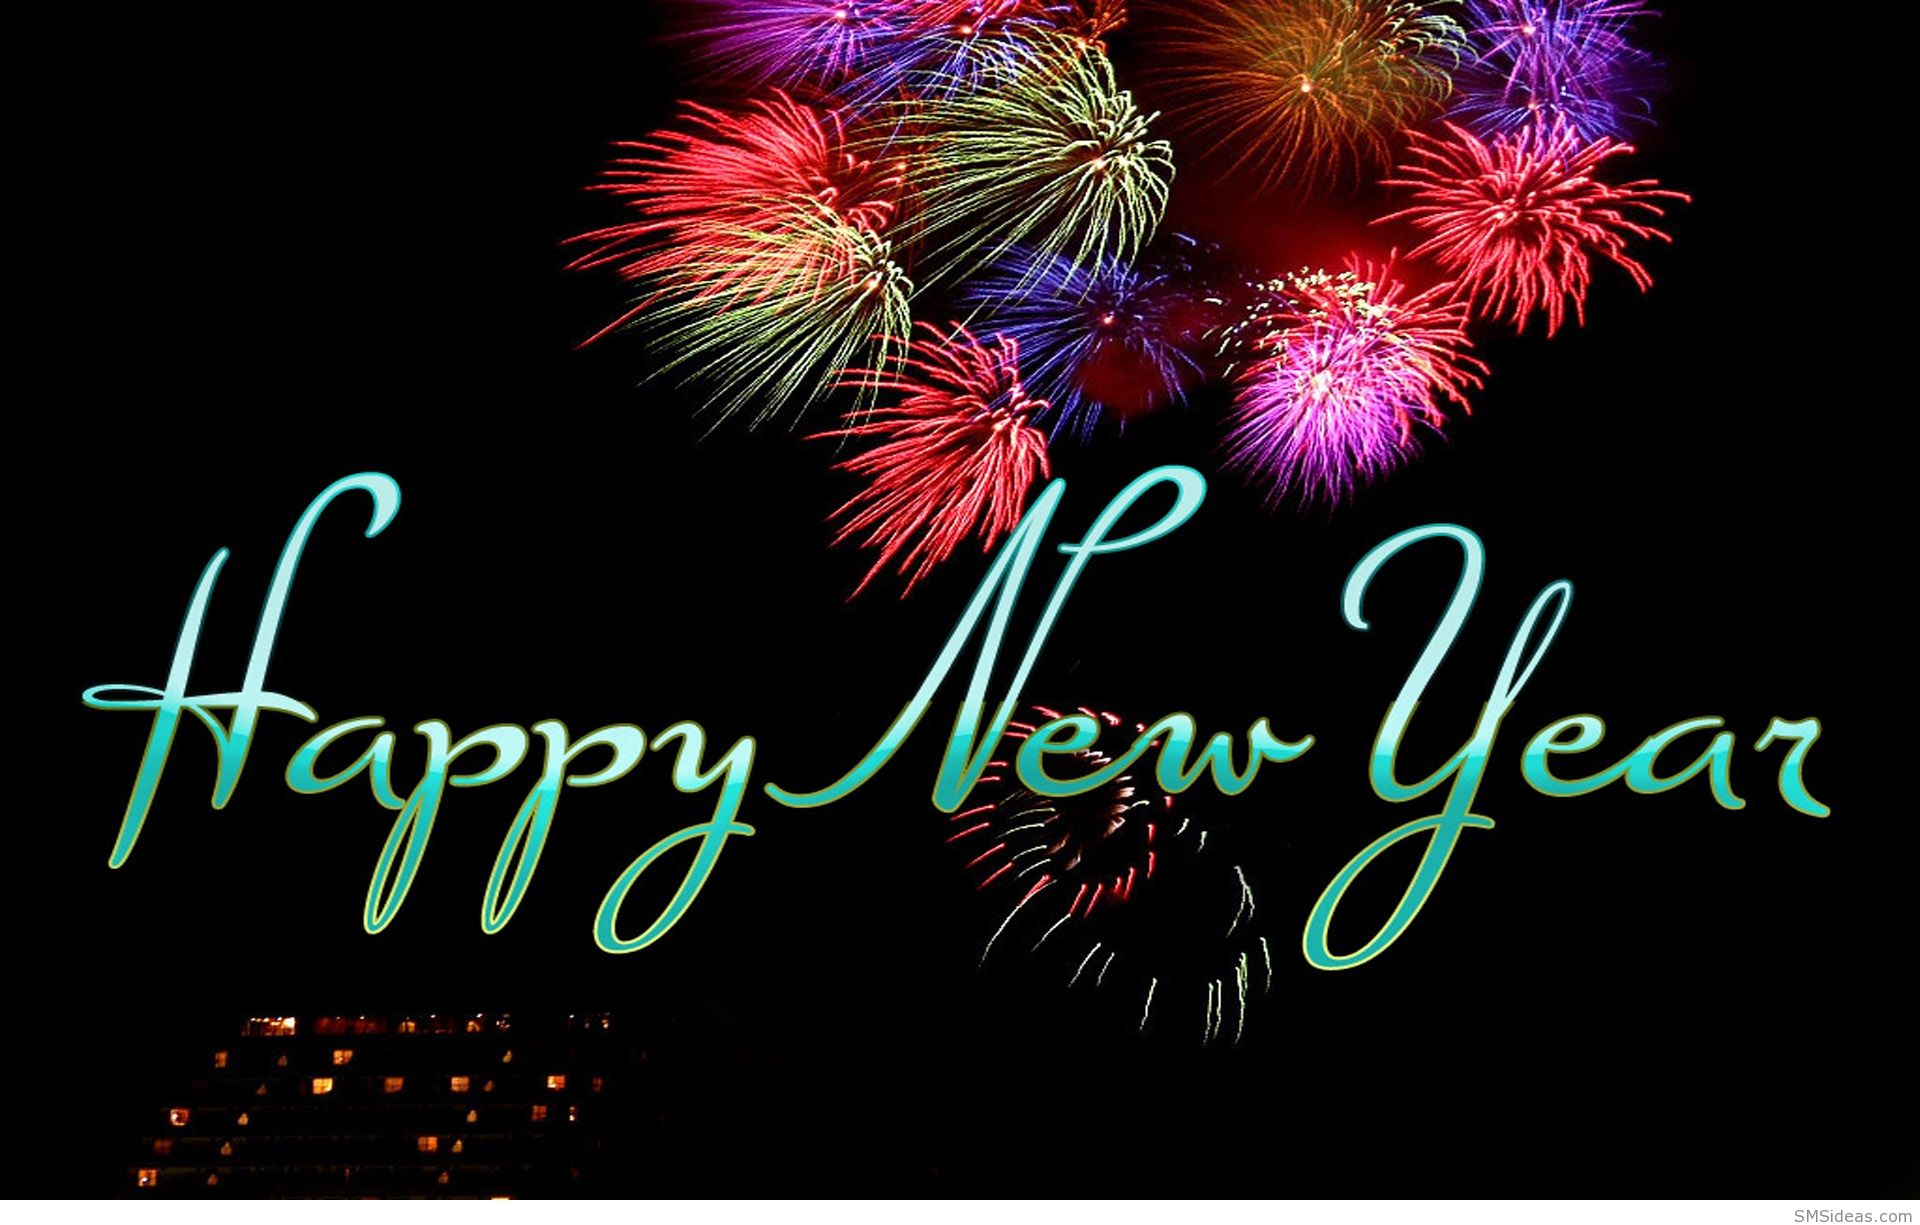 Wishing You The Best In 2016 Happy New Year From Source Wood